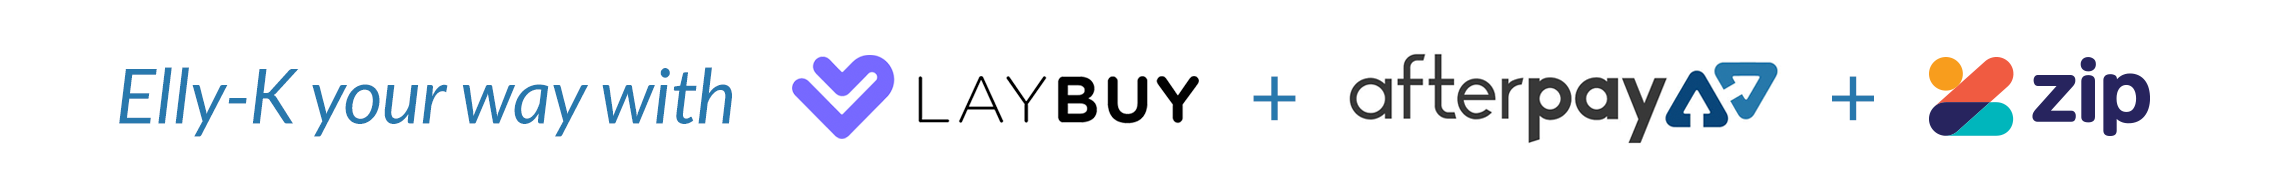 Elly-K your way with Laybuy, Afterpay and Zip